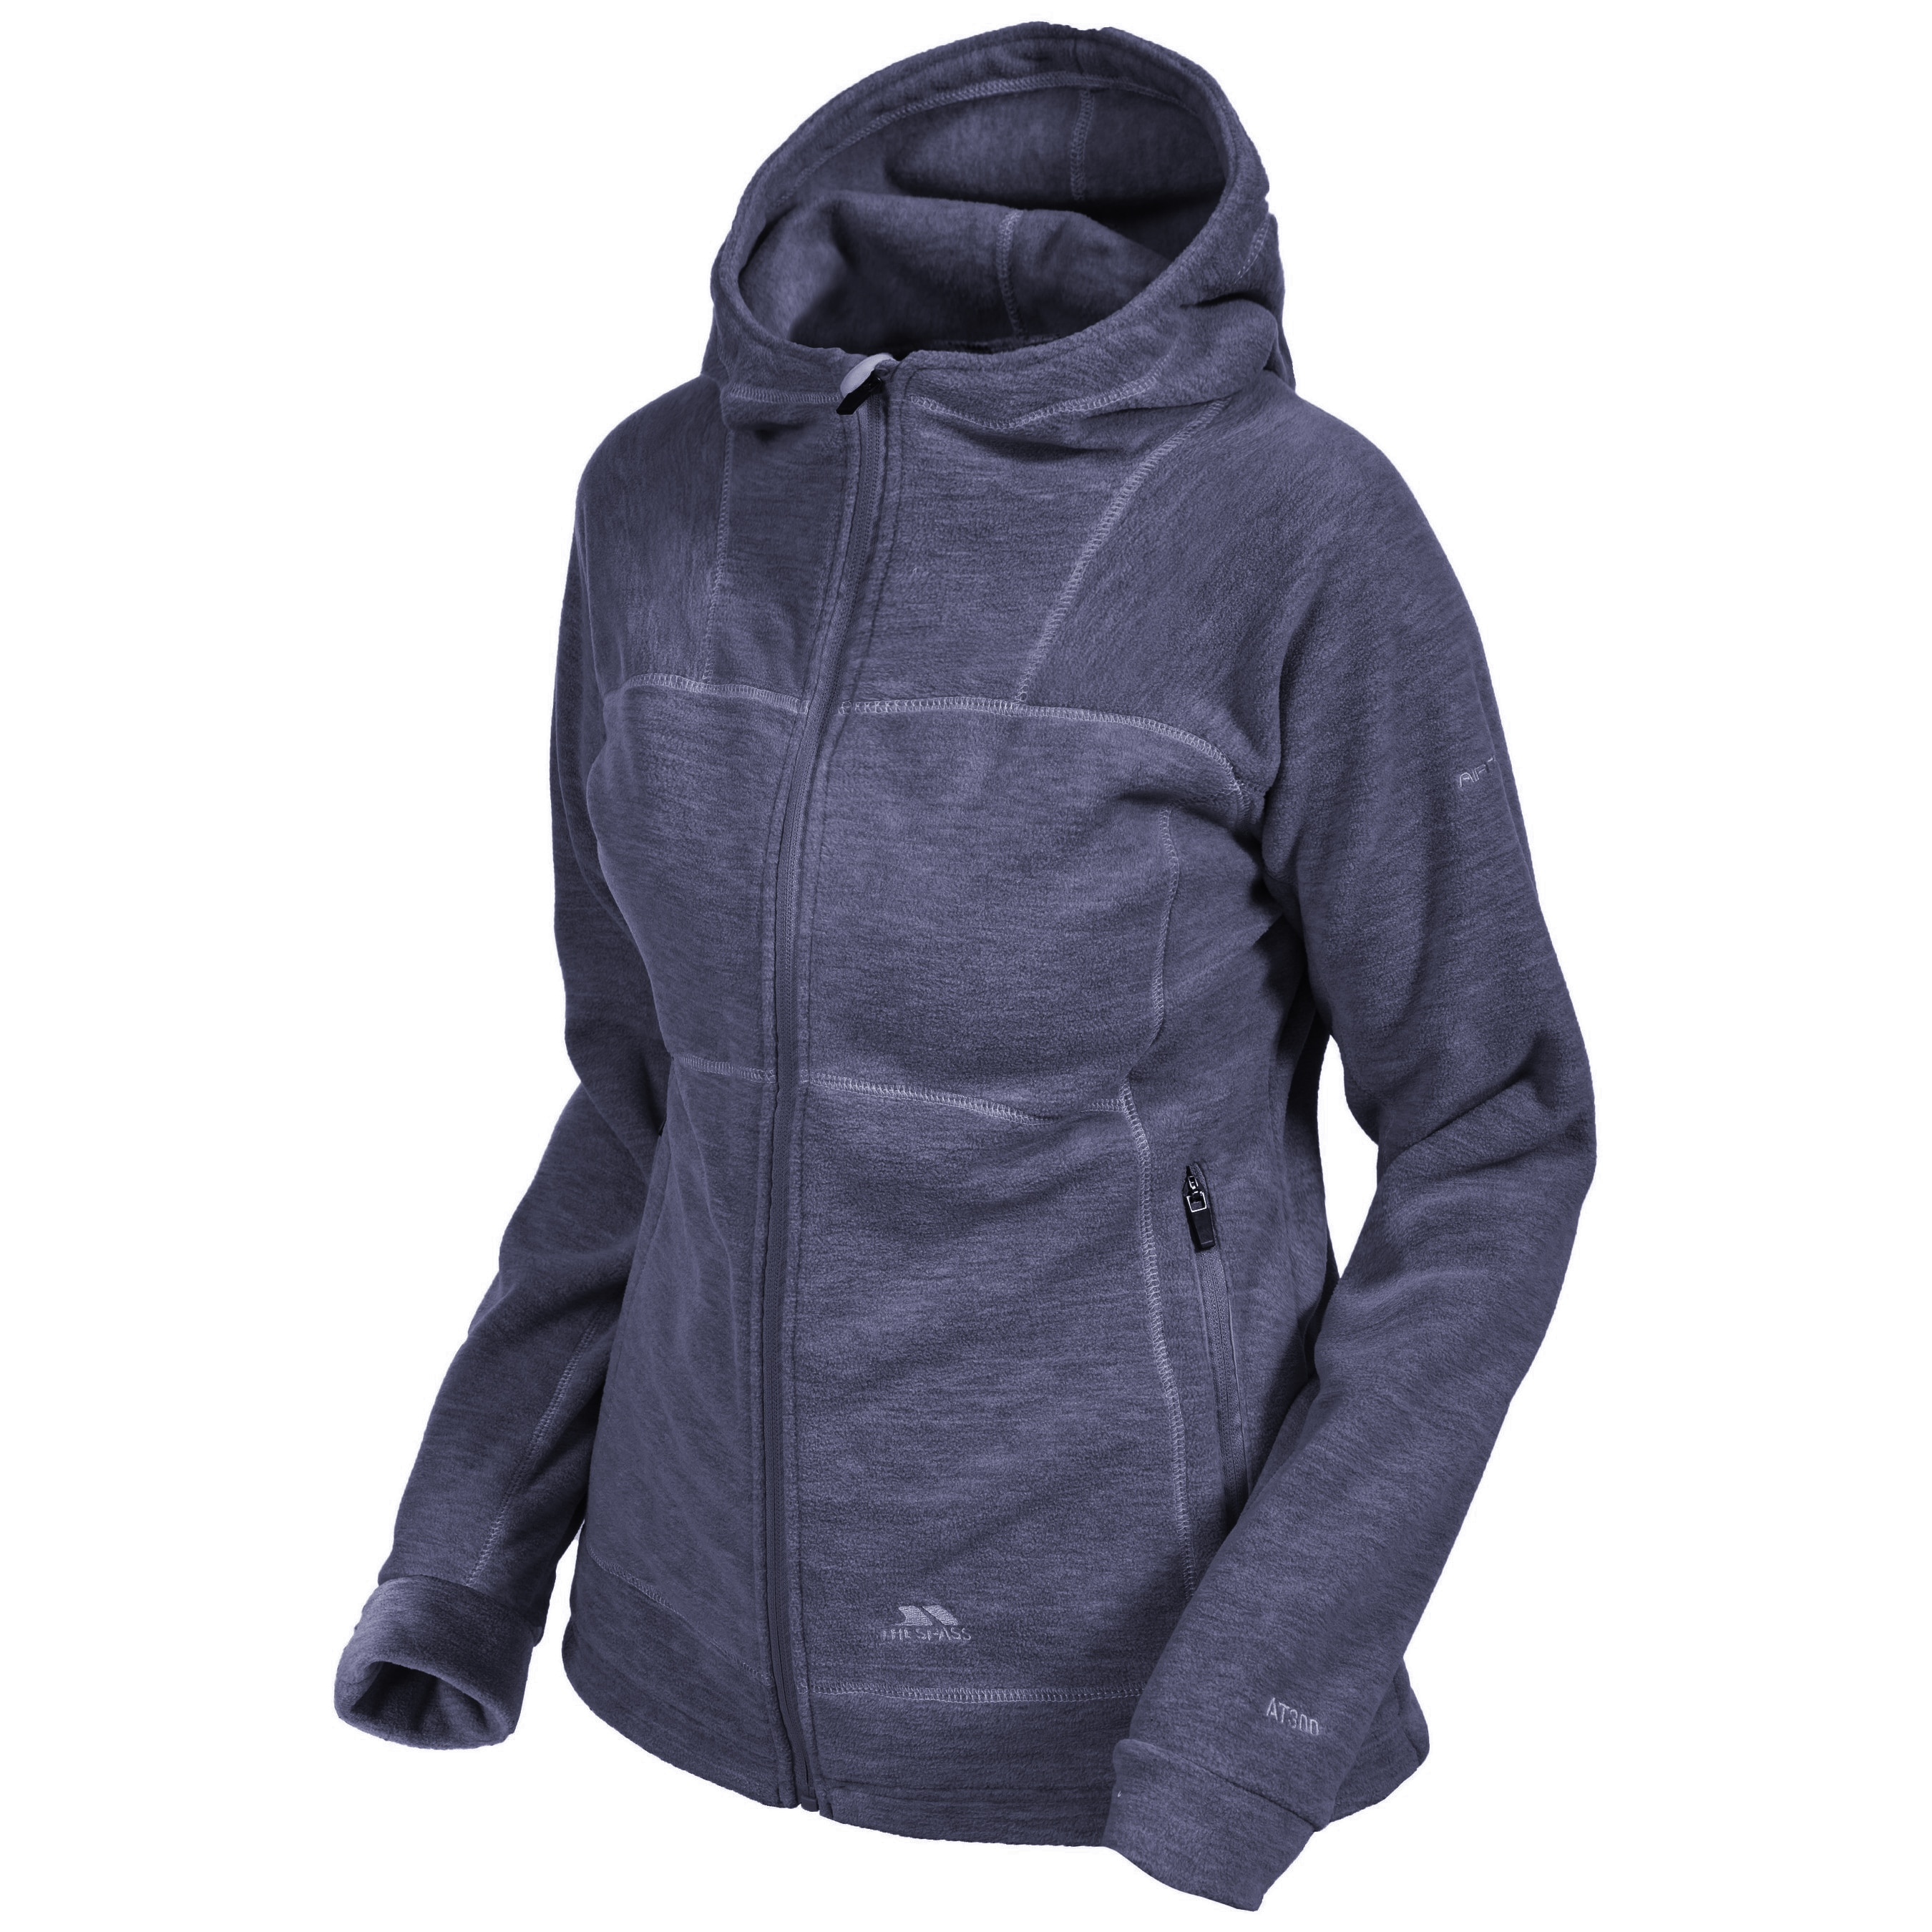 Trespass Fleecejacke Damen Scorch Fleece-Jacke mit Kapuze